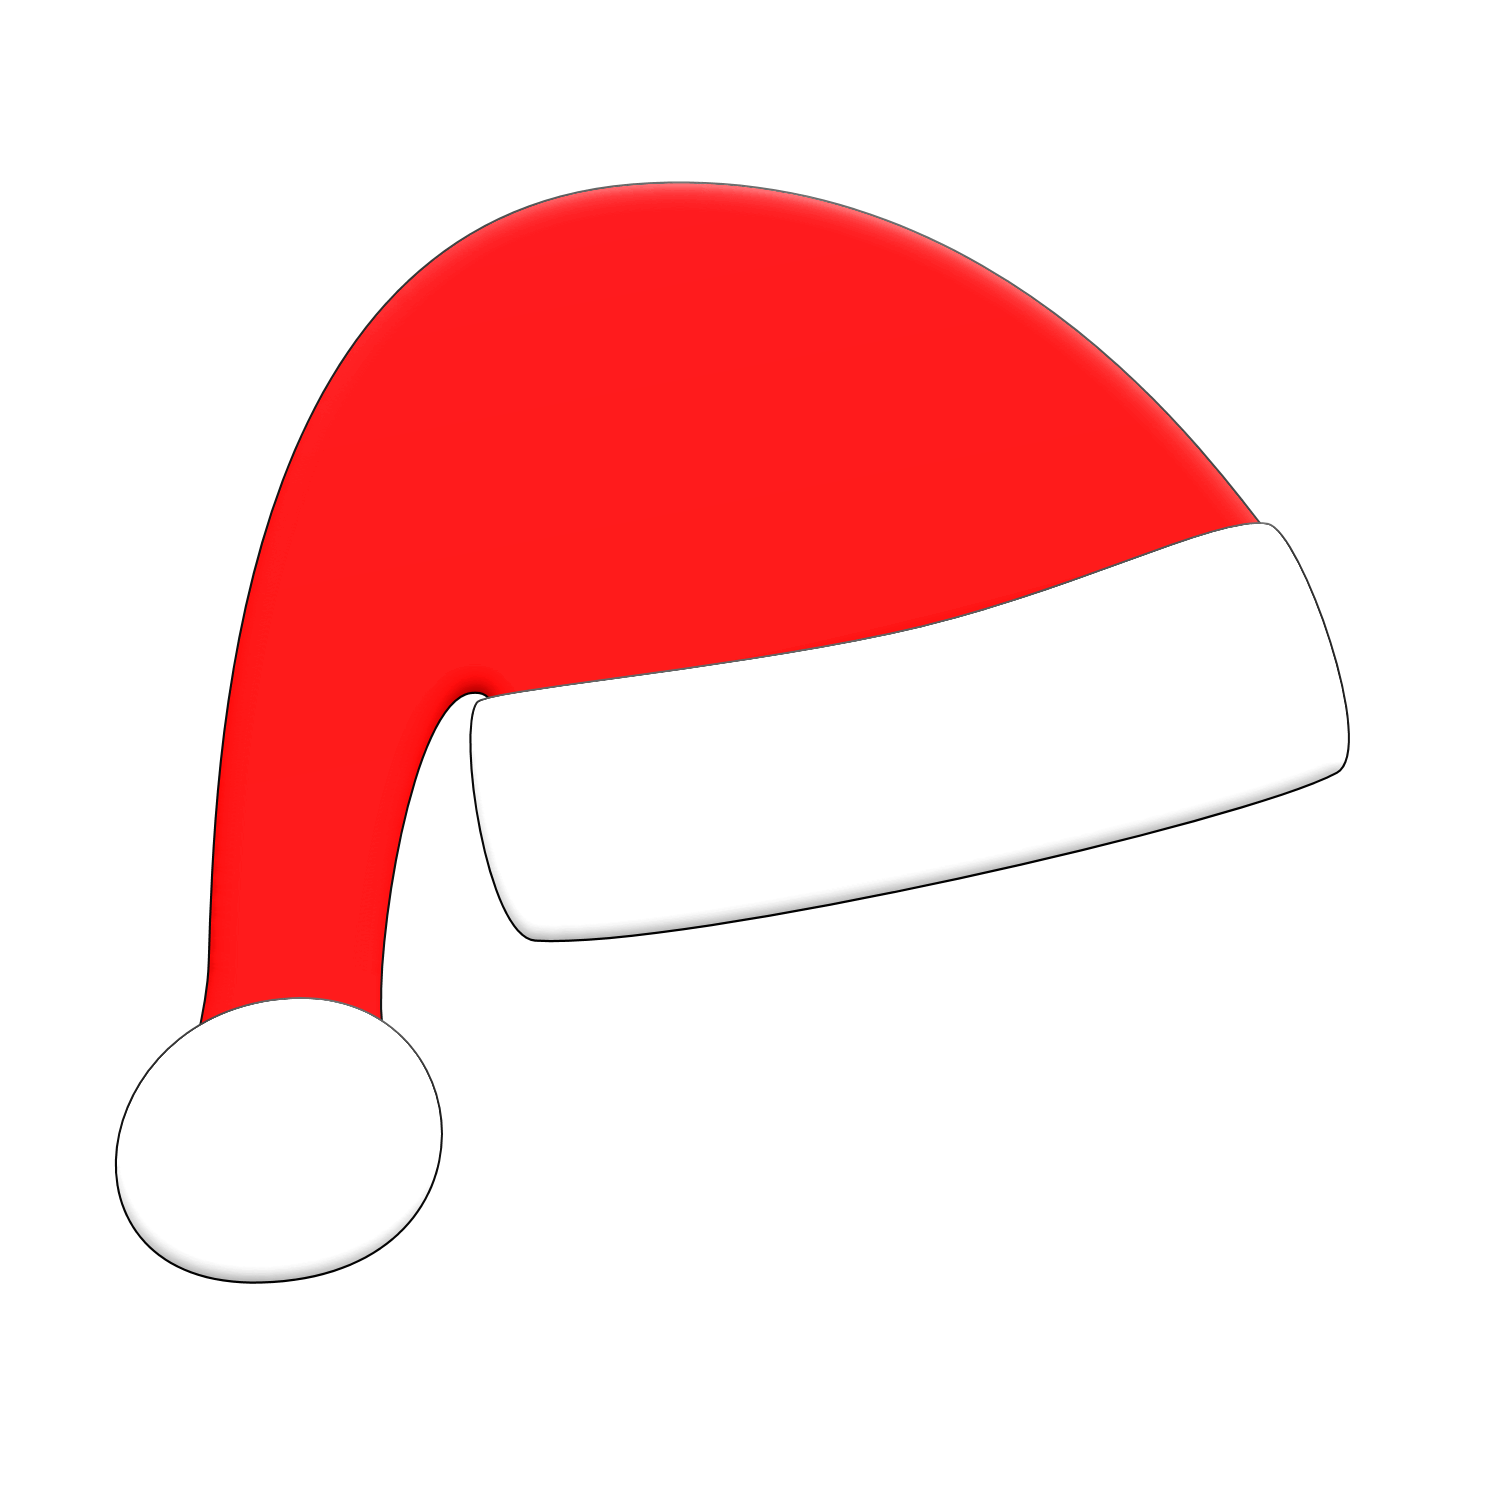 Christmas cap clipart clipart freeuse library Free Picture Of A Santa Hat, Download Free Clip Art, Free Clip Art ... clipart freeuse library